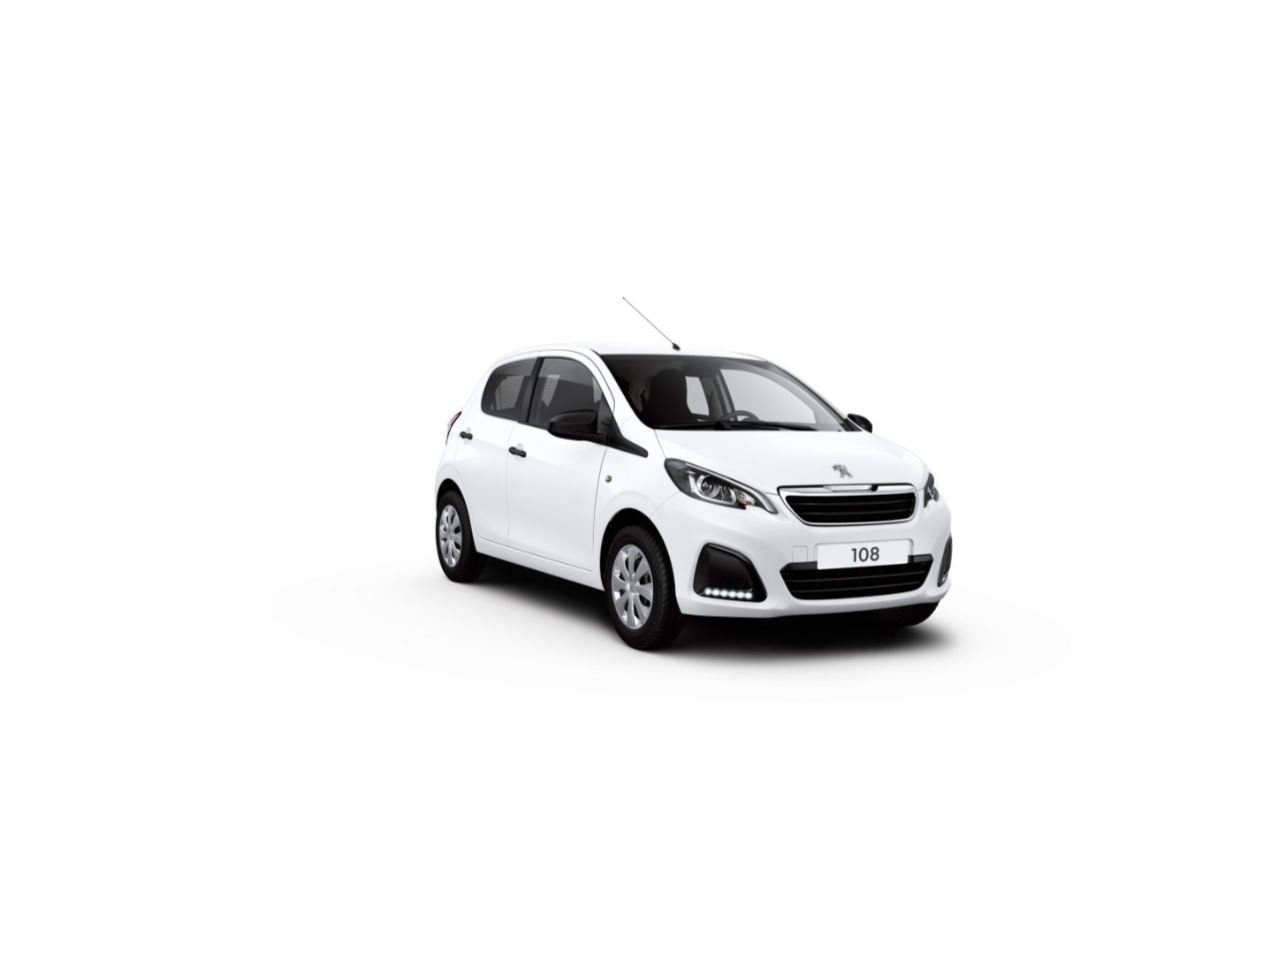 Peugeot 108 private lease 108